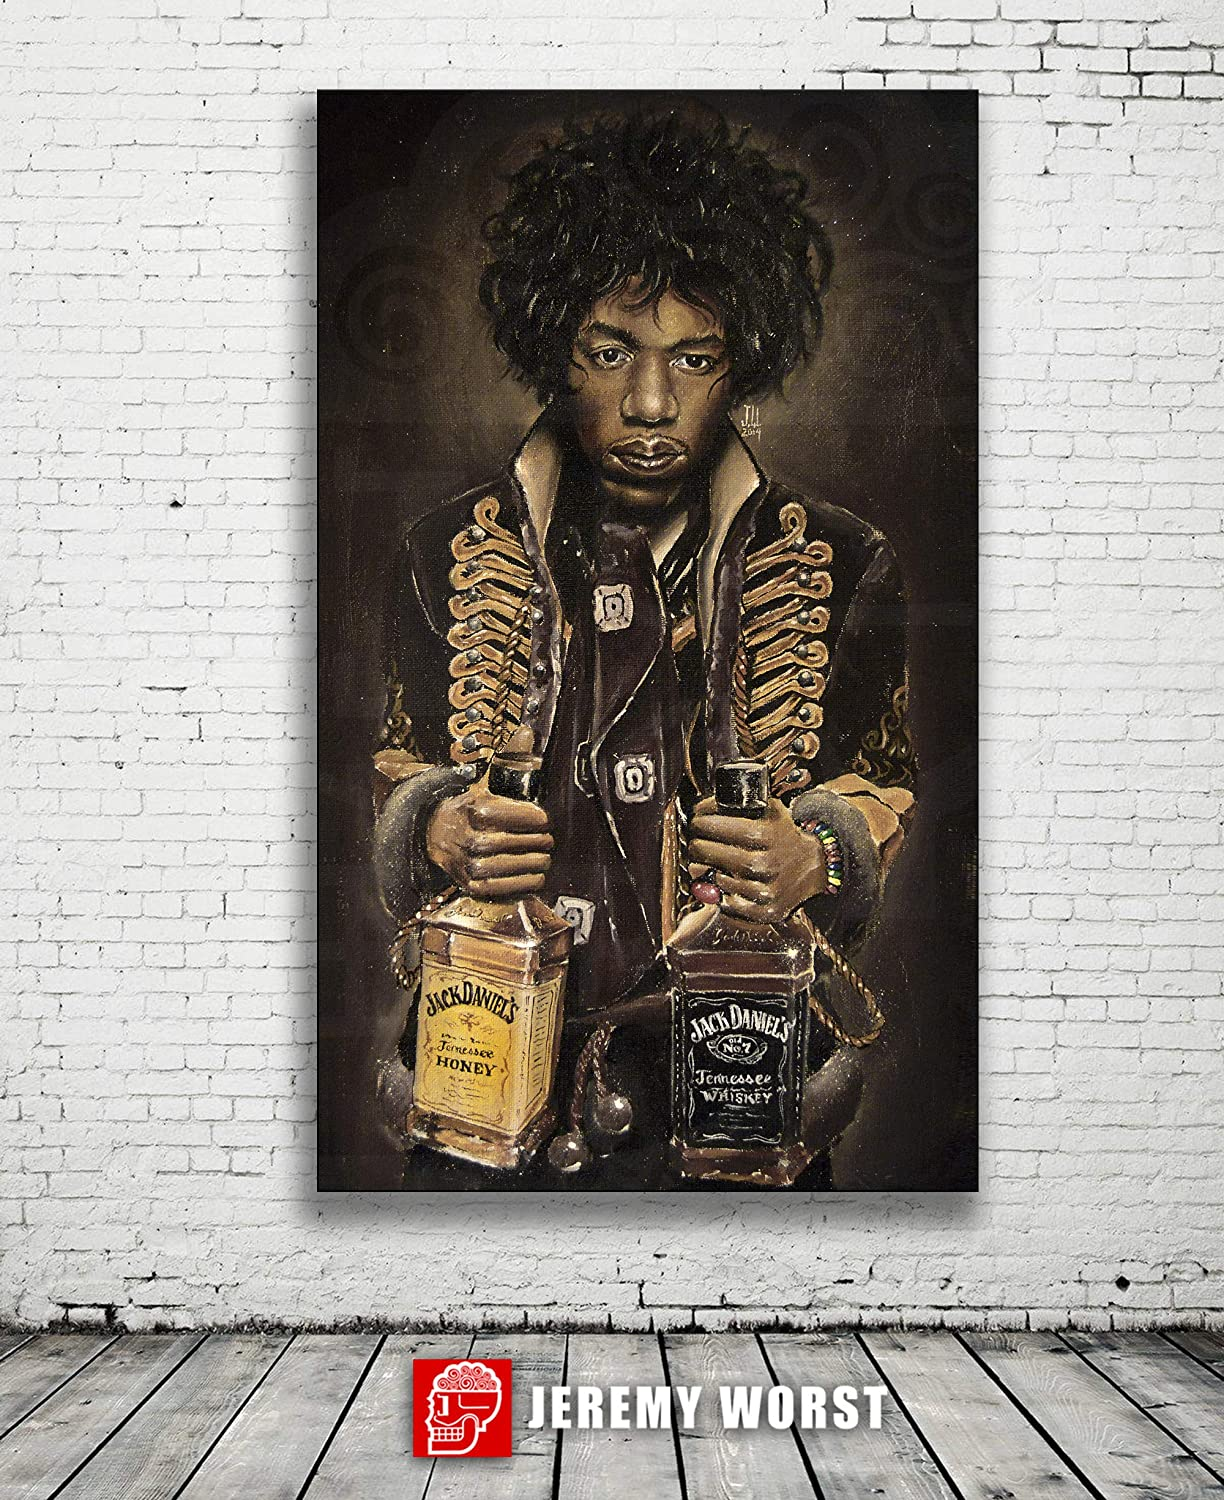 Live band legendary performance Jacket coat scarf pick Ready to Hang Print JEREMY WORSTJimis Jack Jimi Hendrix Poster Jack Daniels Wall Art Canvas On Stage performing Guitar gifts